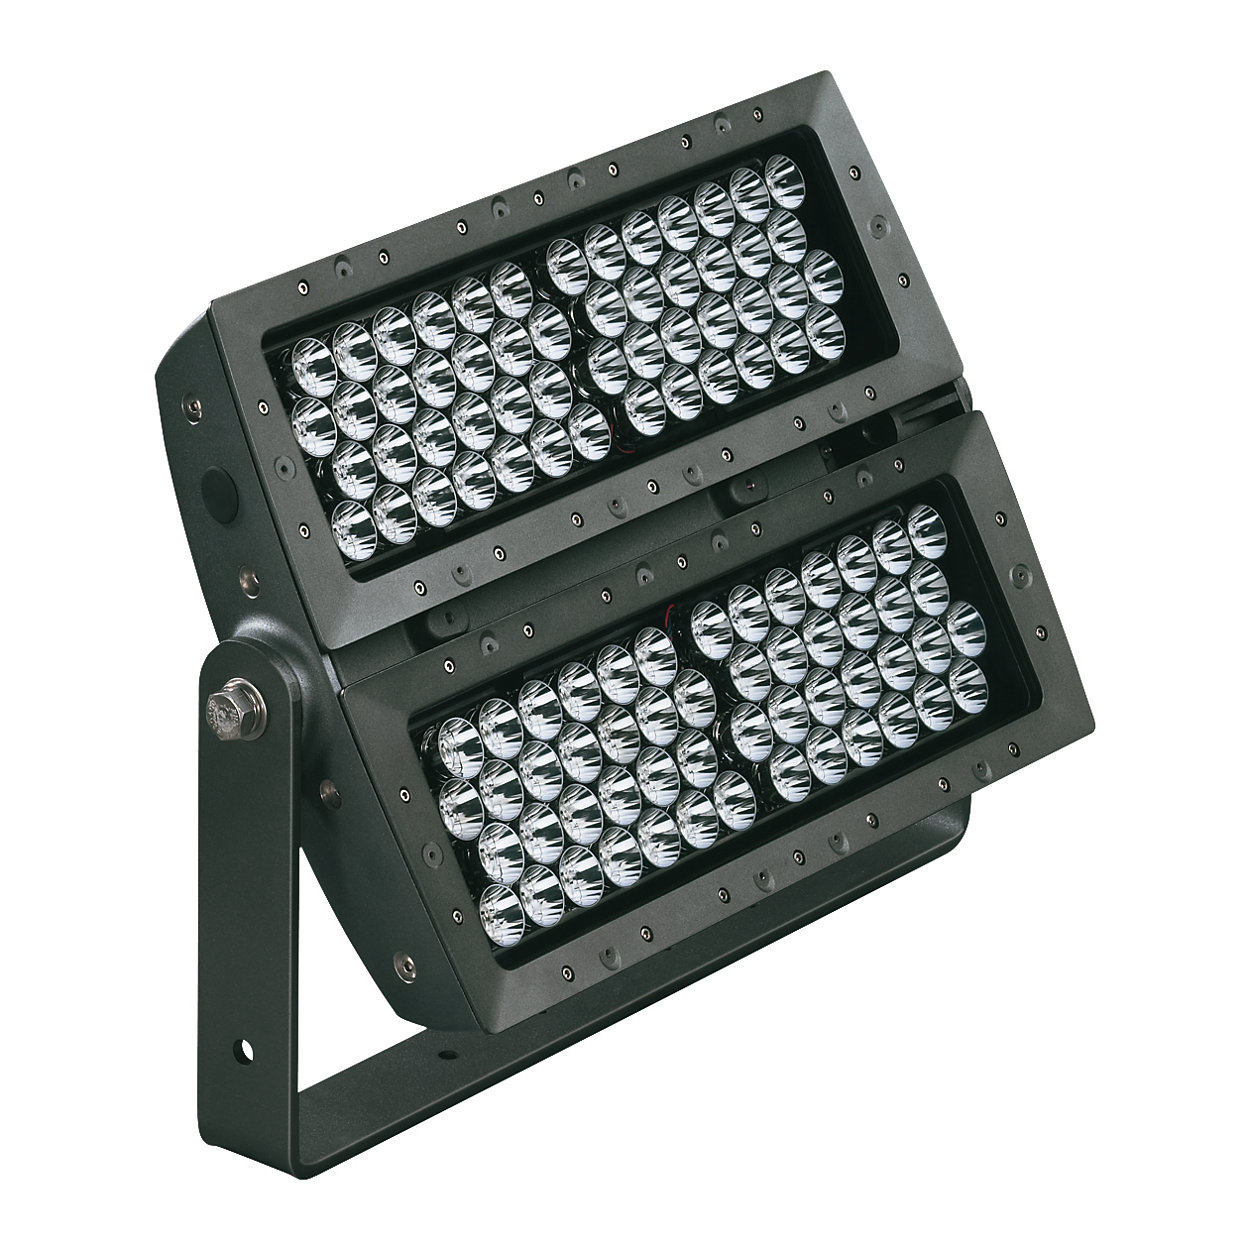 Exterior long-throw floodlight with single temperature white light